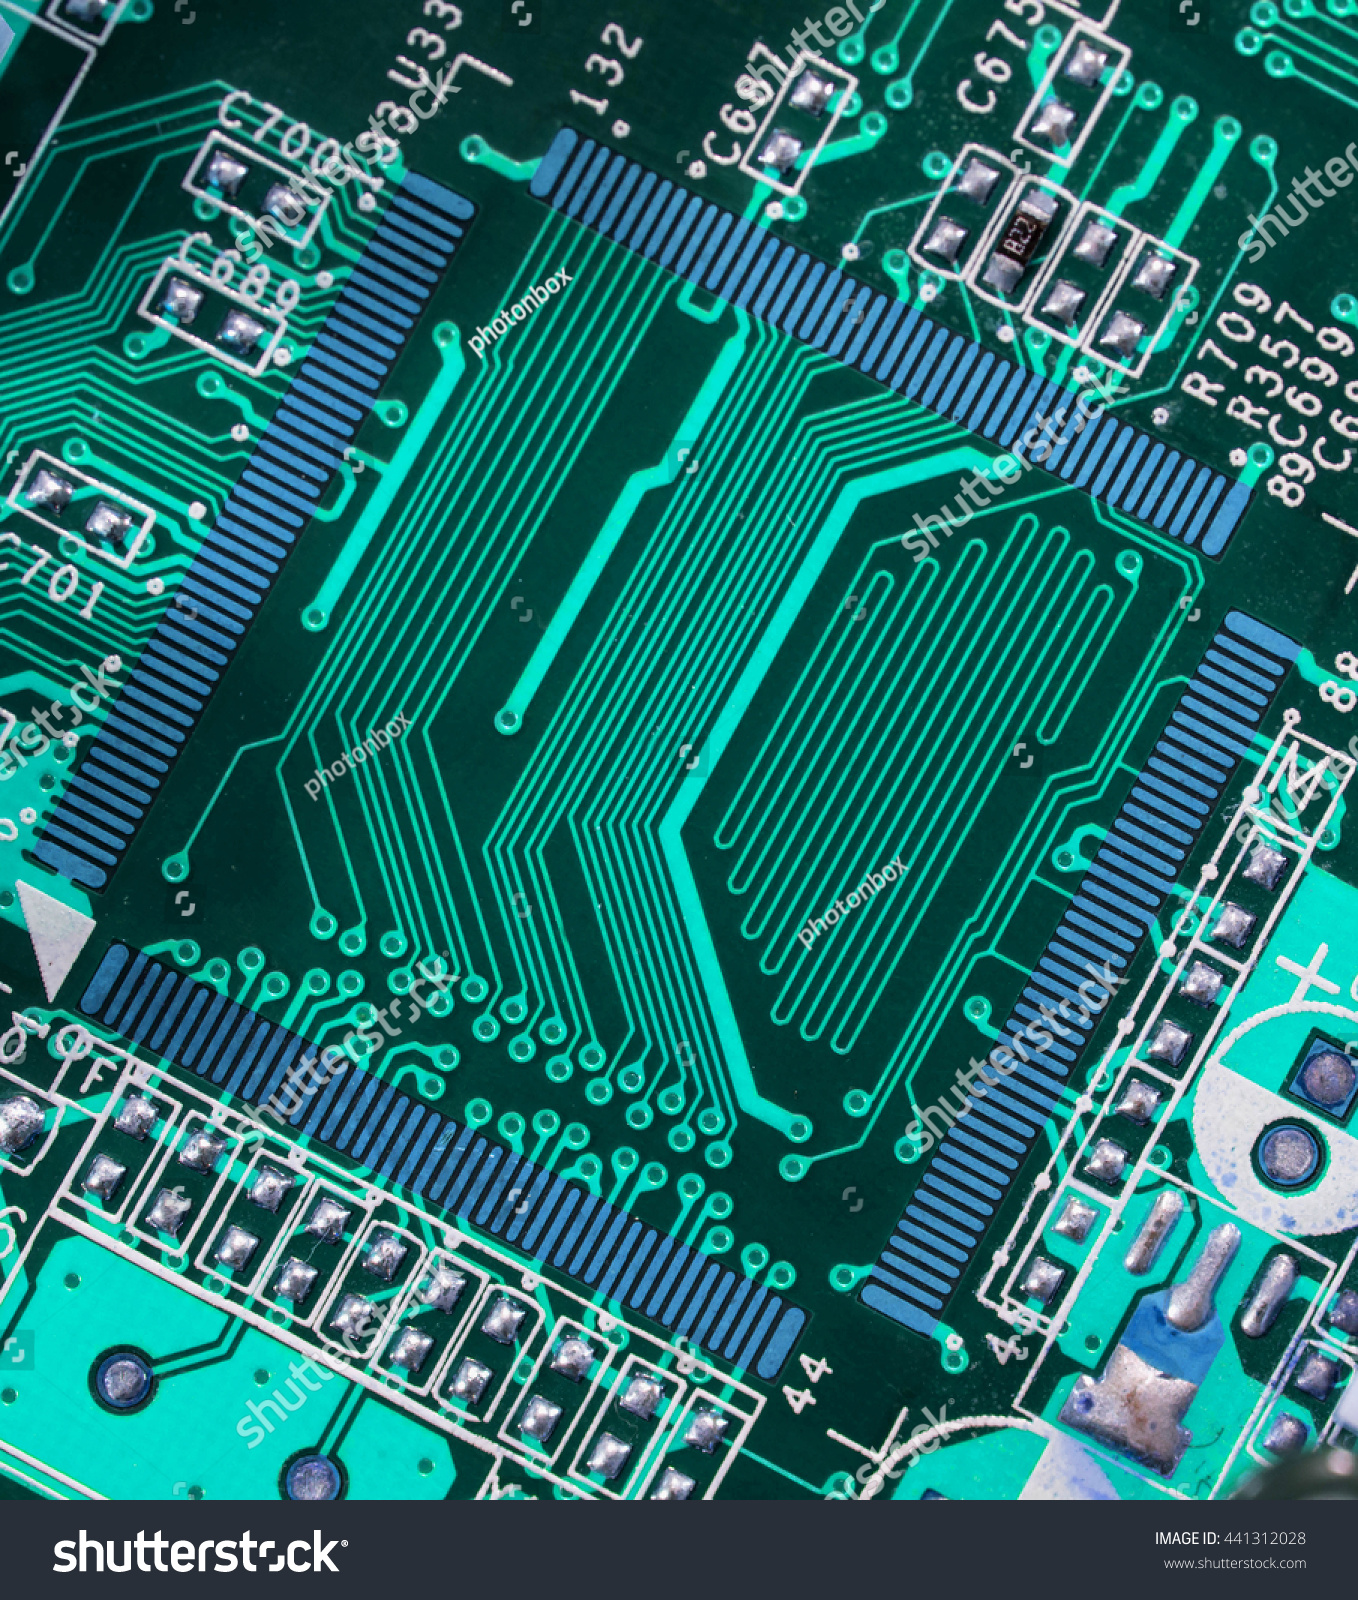 Royalty Free Turquoise Blue Pcb Motherboard Chip 441312028 Stock Electronic Integrated Circuit Image Microchip Board Pattern Background Photo